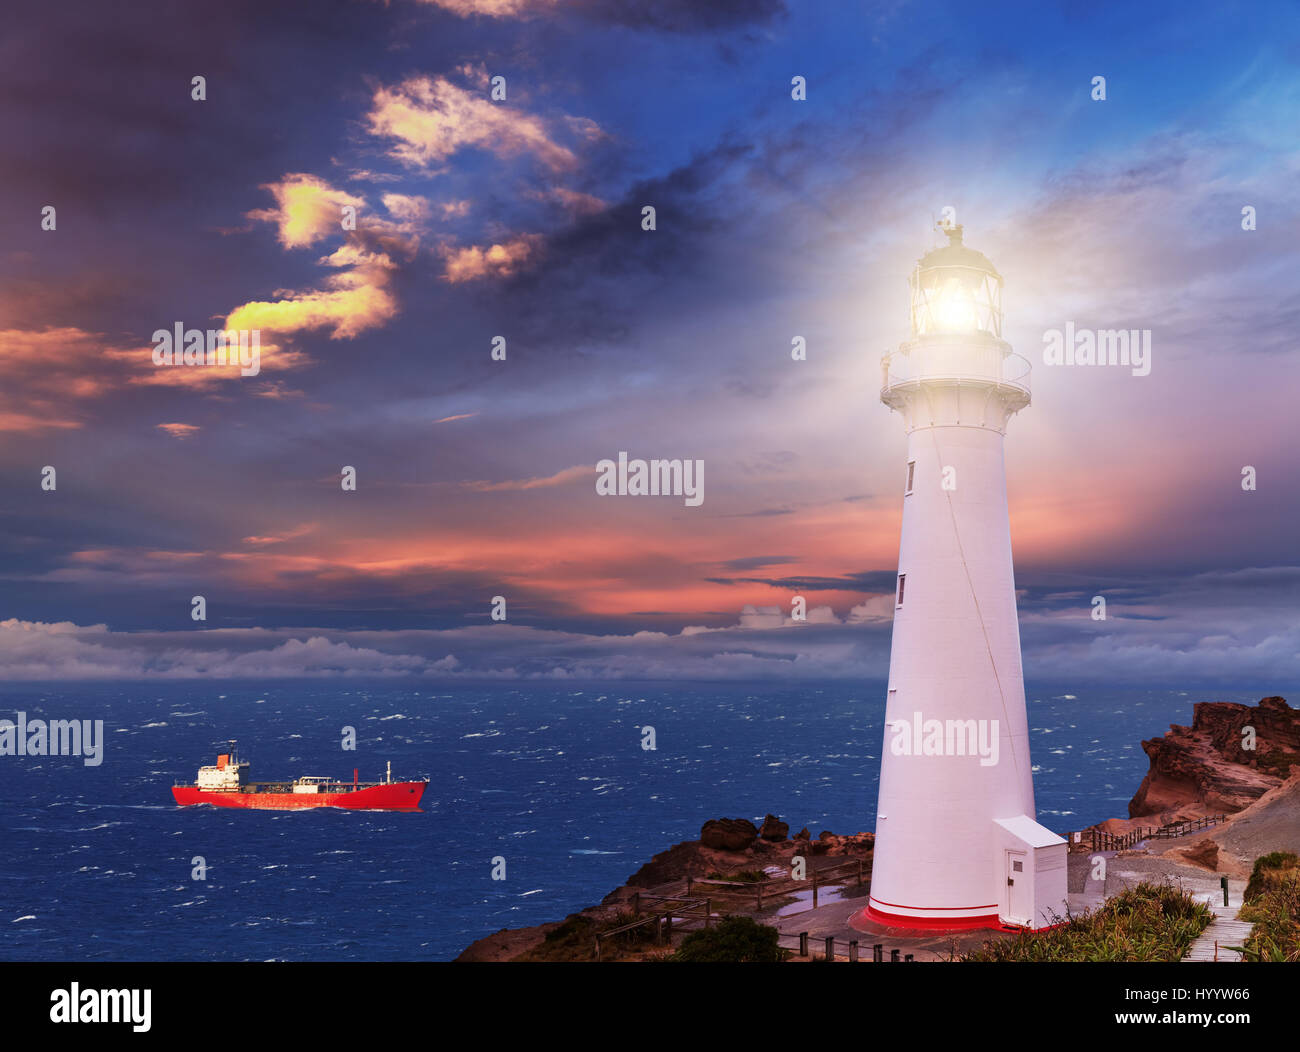 Sunset seascape, le phare sur les bluff Photo Stock